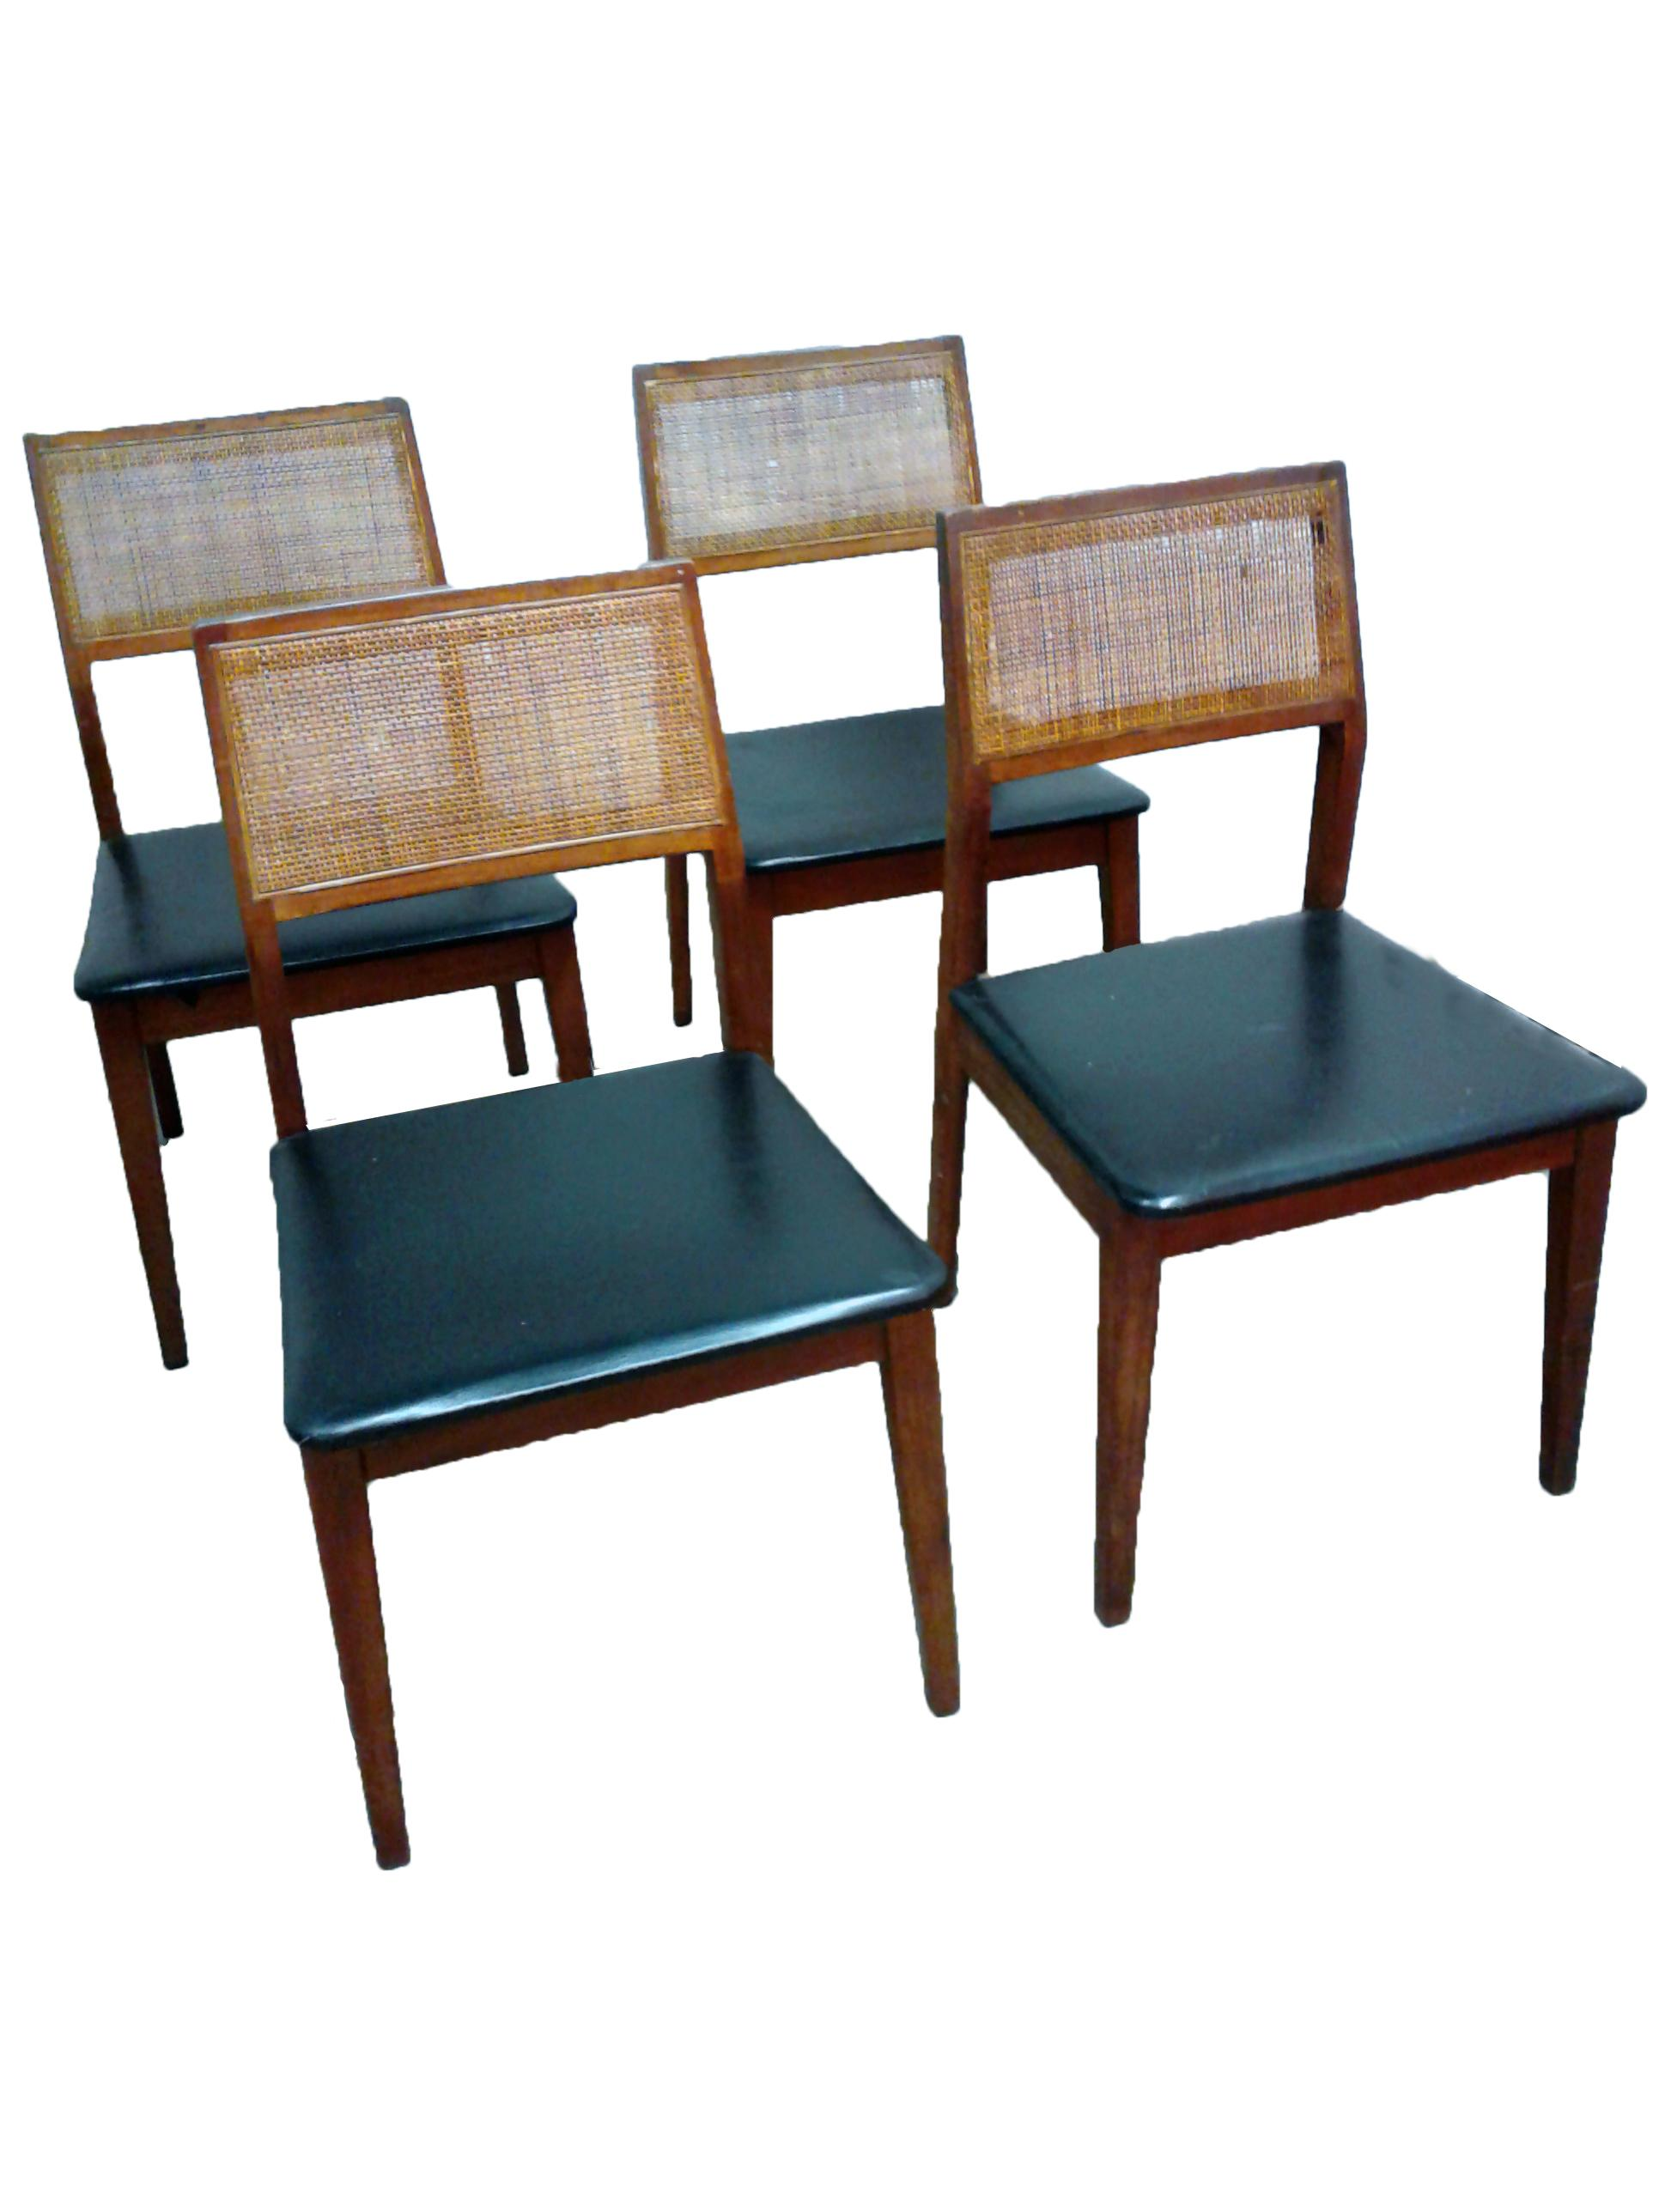 Vintage Hibriten Walnut Cane Back Dining Chairs Set of 4